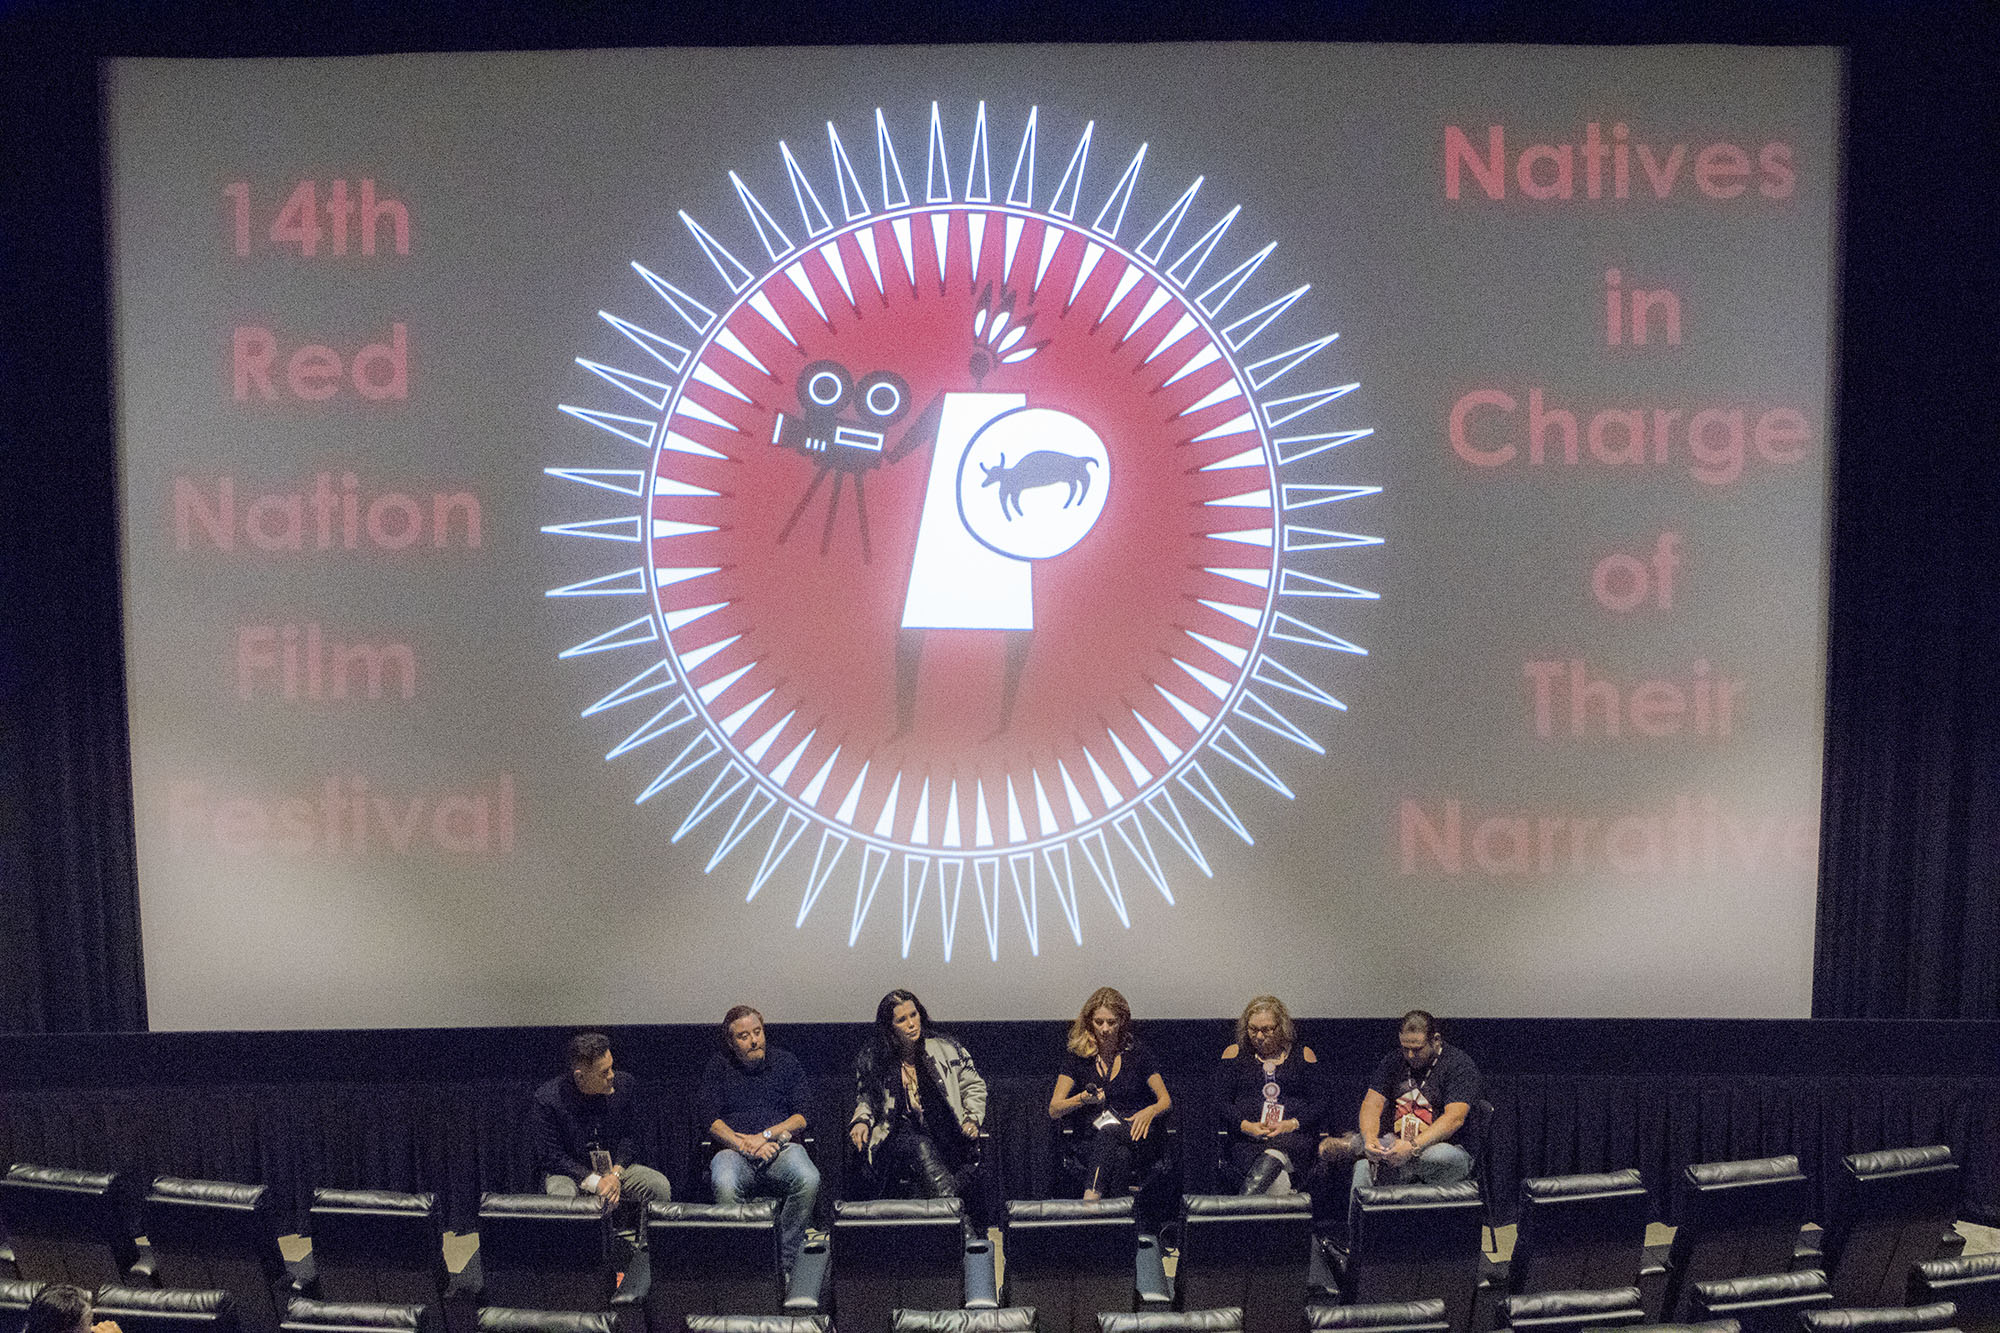 Red Nation Film Festival -NATIVES IN CHARGE OF THEIR NARRATIVE on Tuesday, November 14, 2017 at Laemele Monica Film Center Screening of Open Season (short) and Wind River.